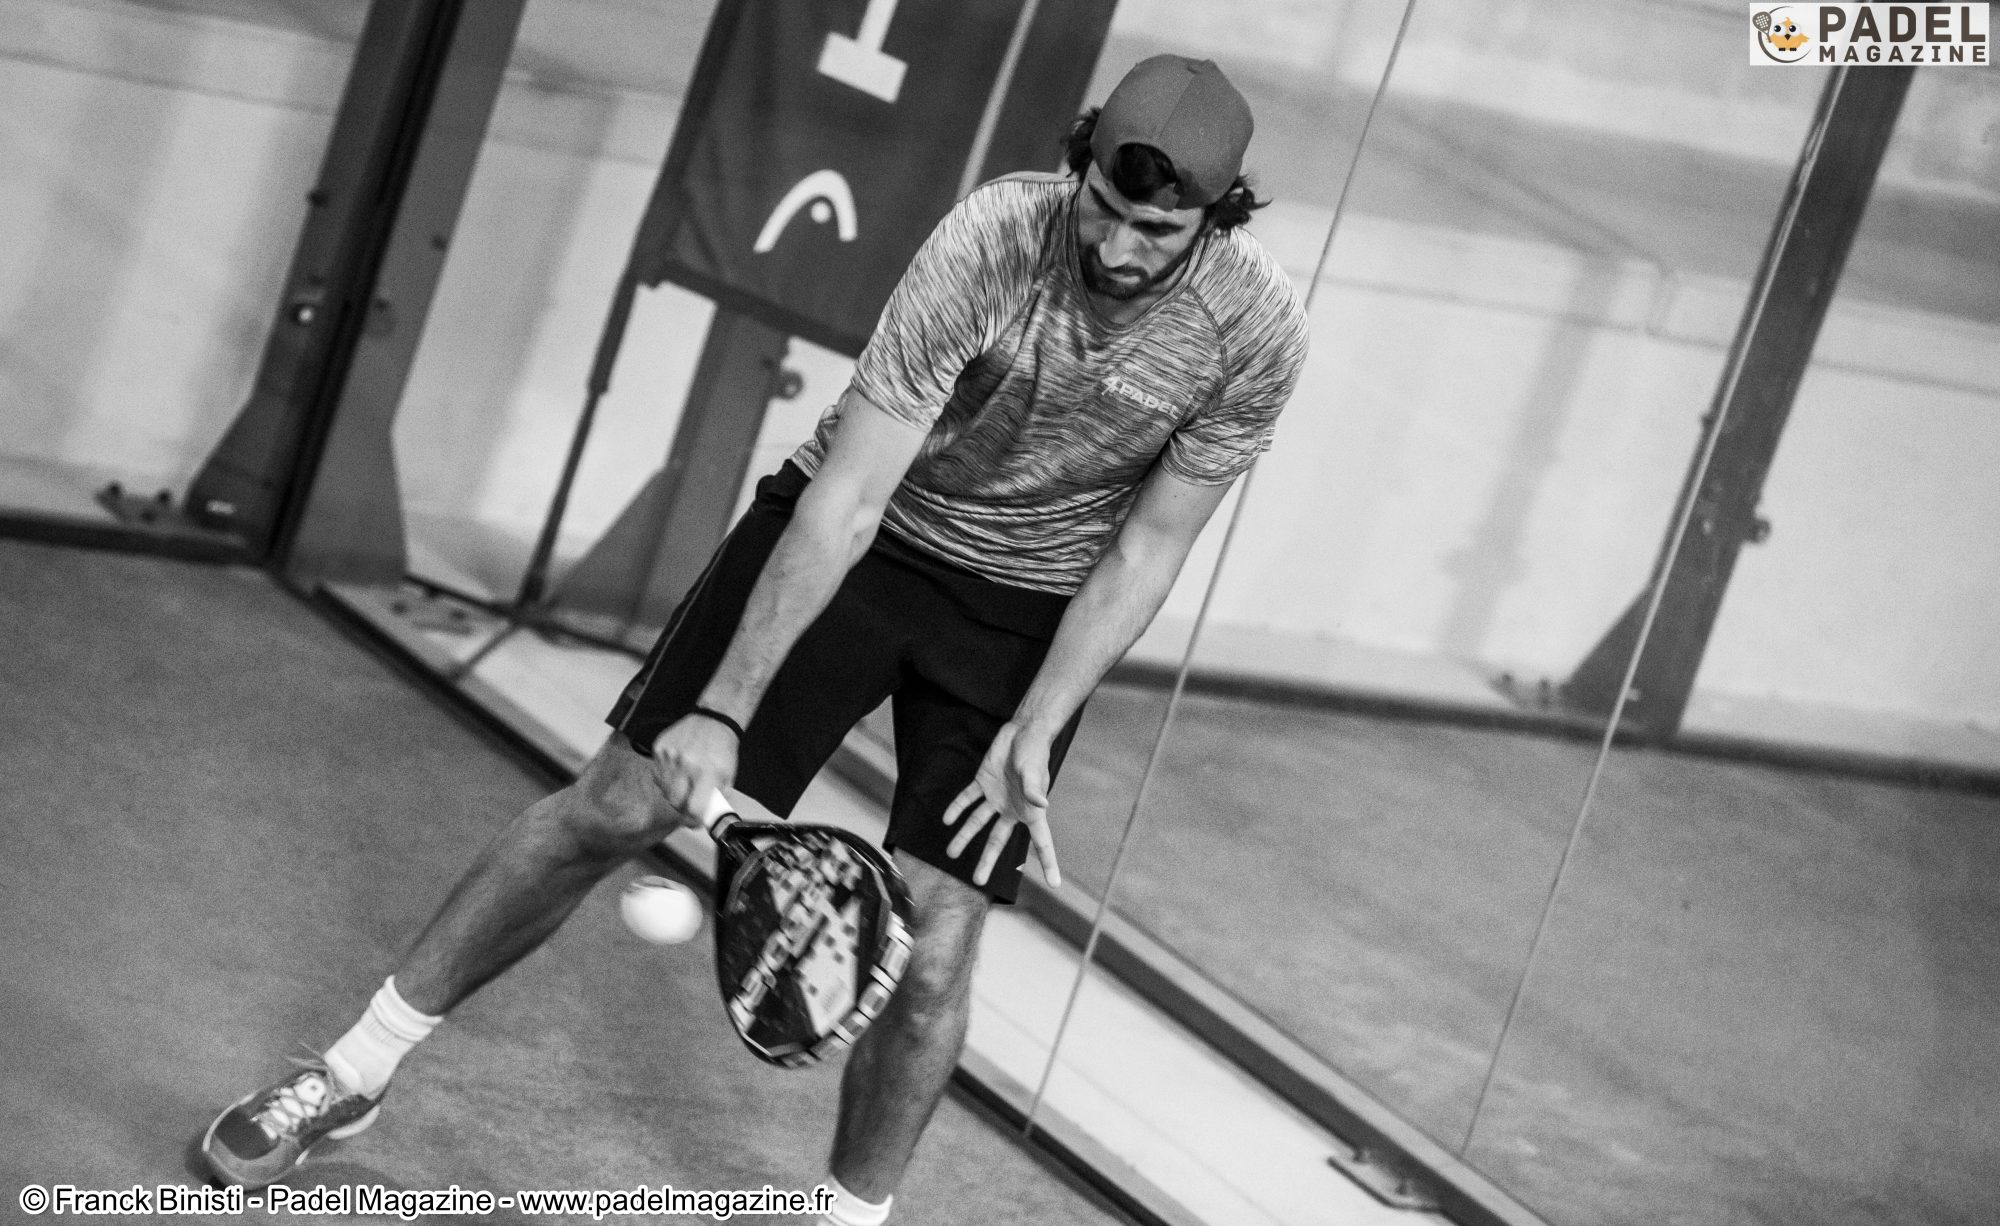 Double ration de padel le week-end dernier